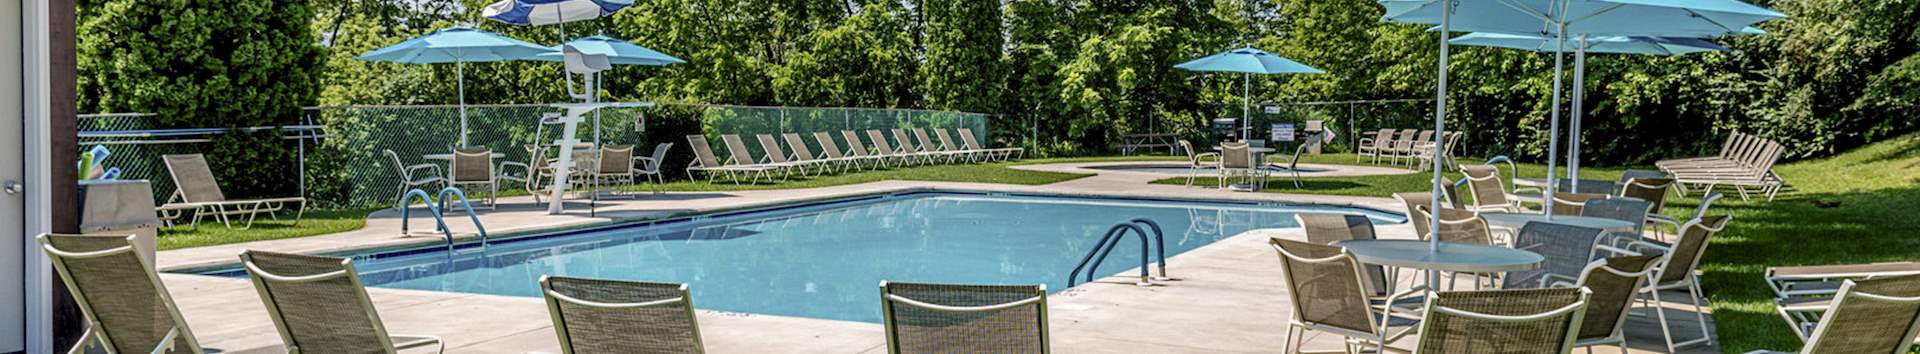 Swimming Pool of Grampian Hills Apartments at Manor Communities, Williamsport/Pennsylvania